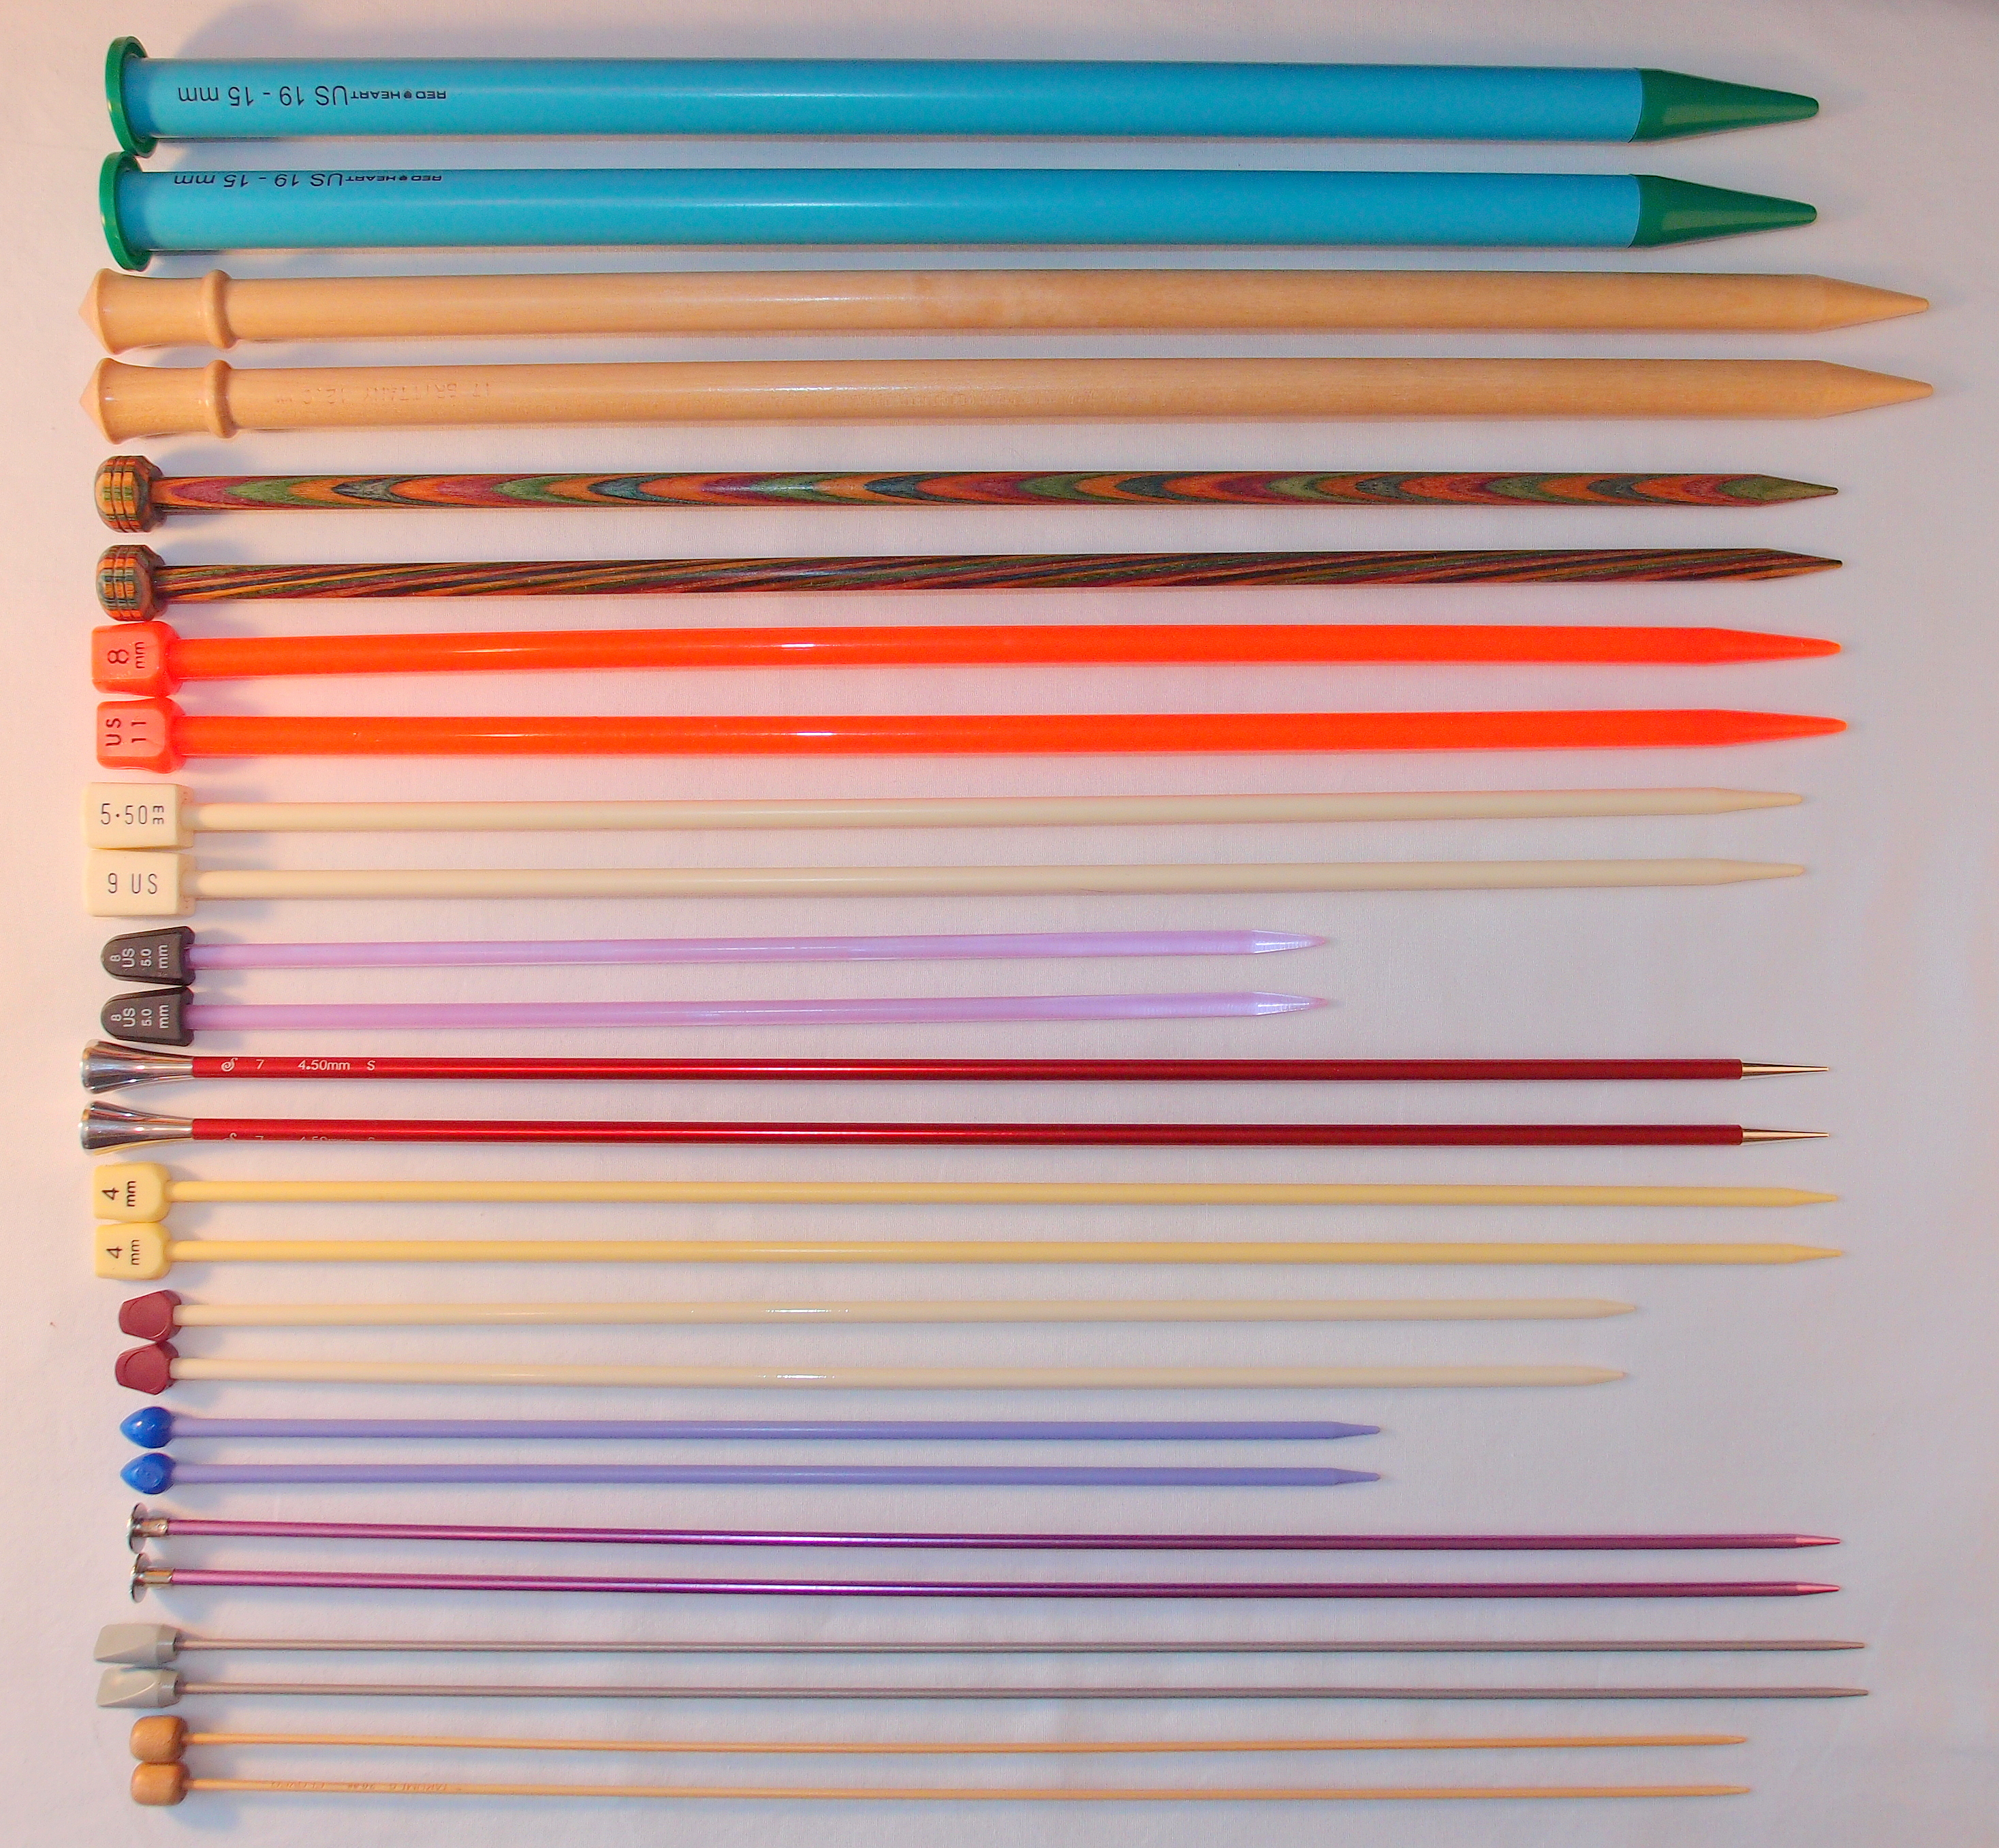 File:Straight knitting needles.JPG - Wikipedia, the free encyclopedia